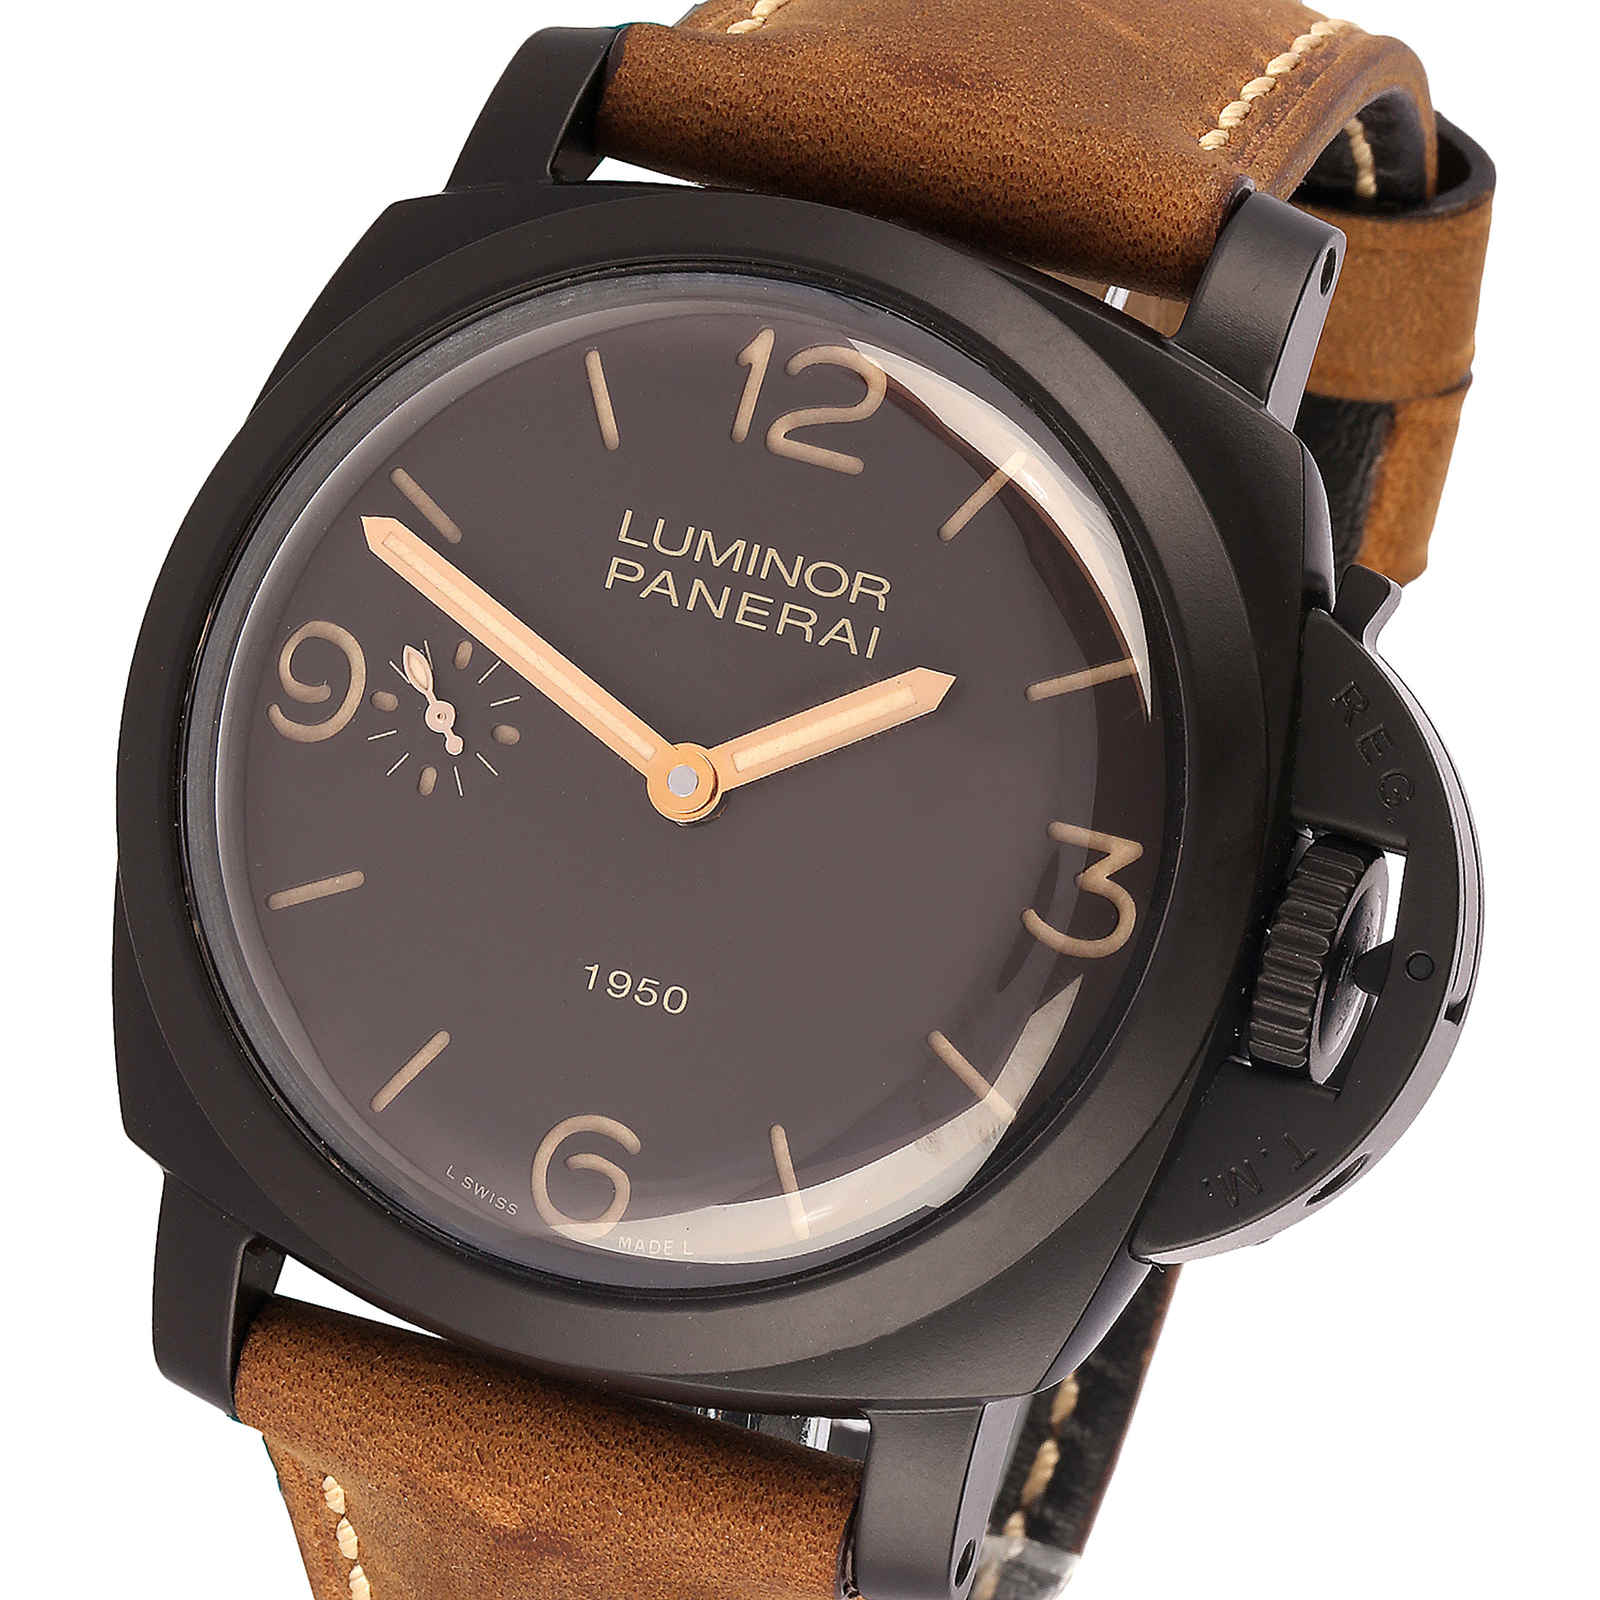 Pre-Owned Panerai Luminor 1950, Circa 1950